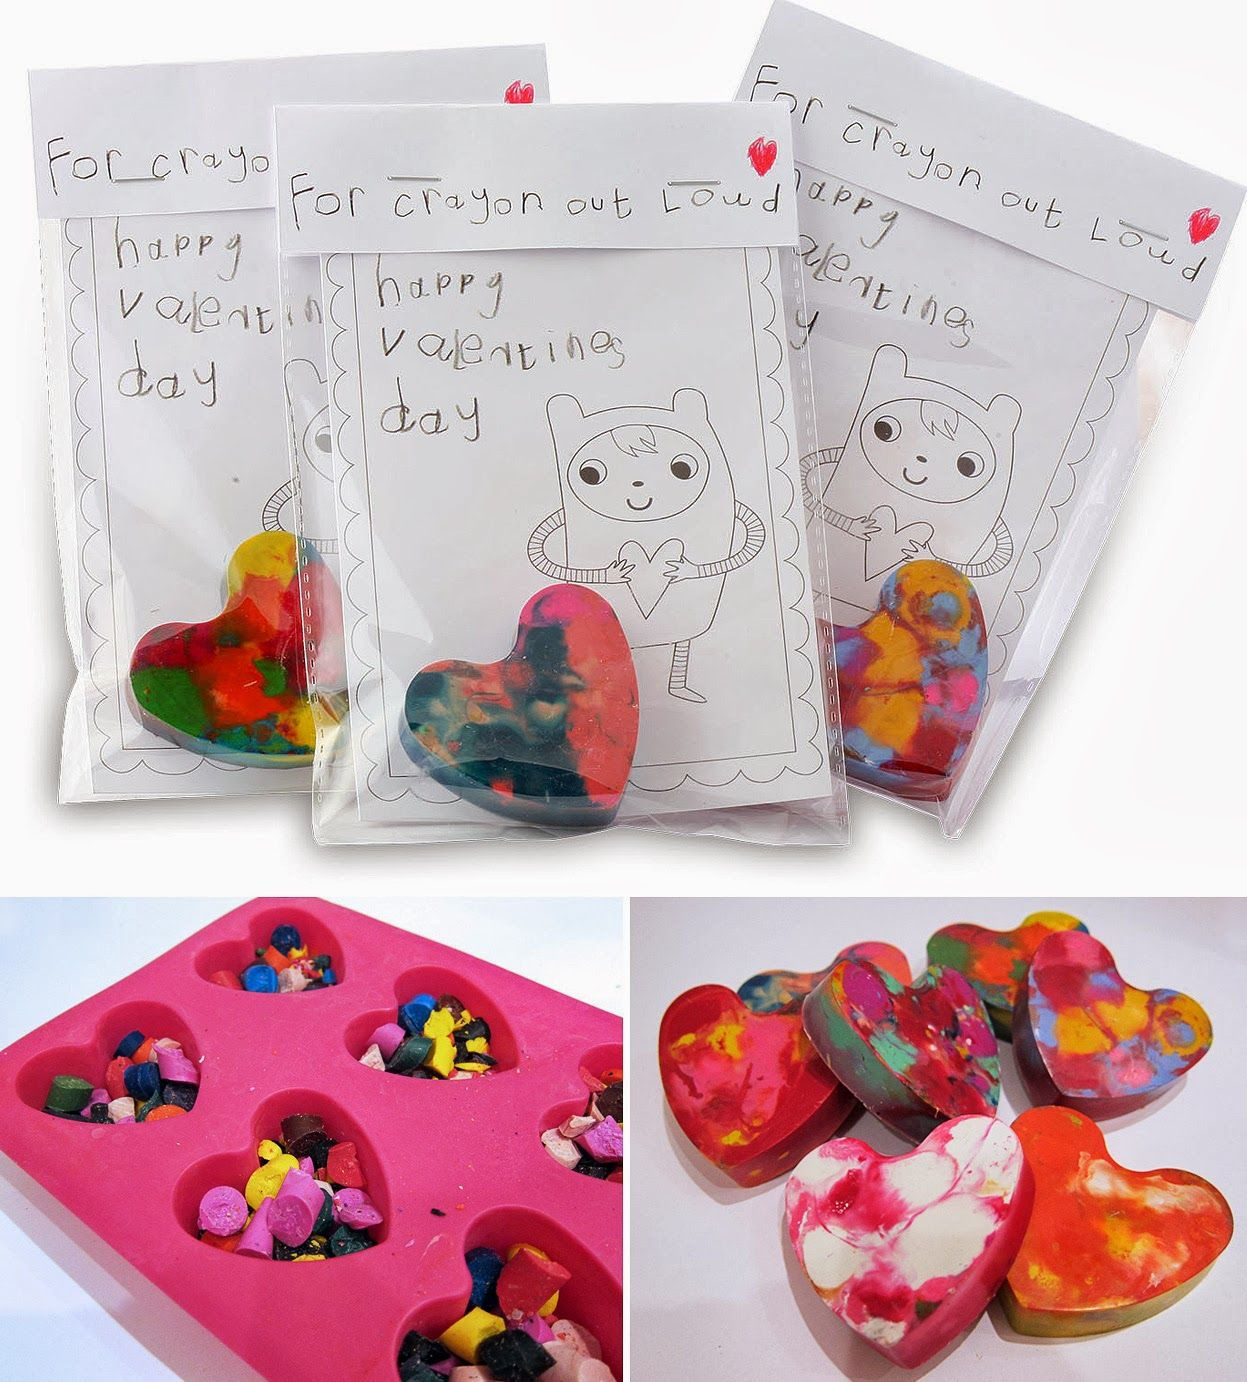 For Crayon Out Loud from Molly Moo - candy alternatives for Valentine's Day